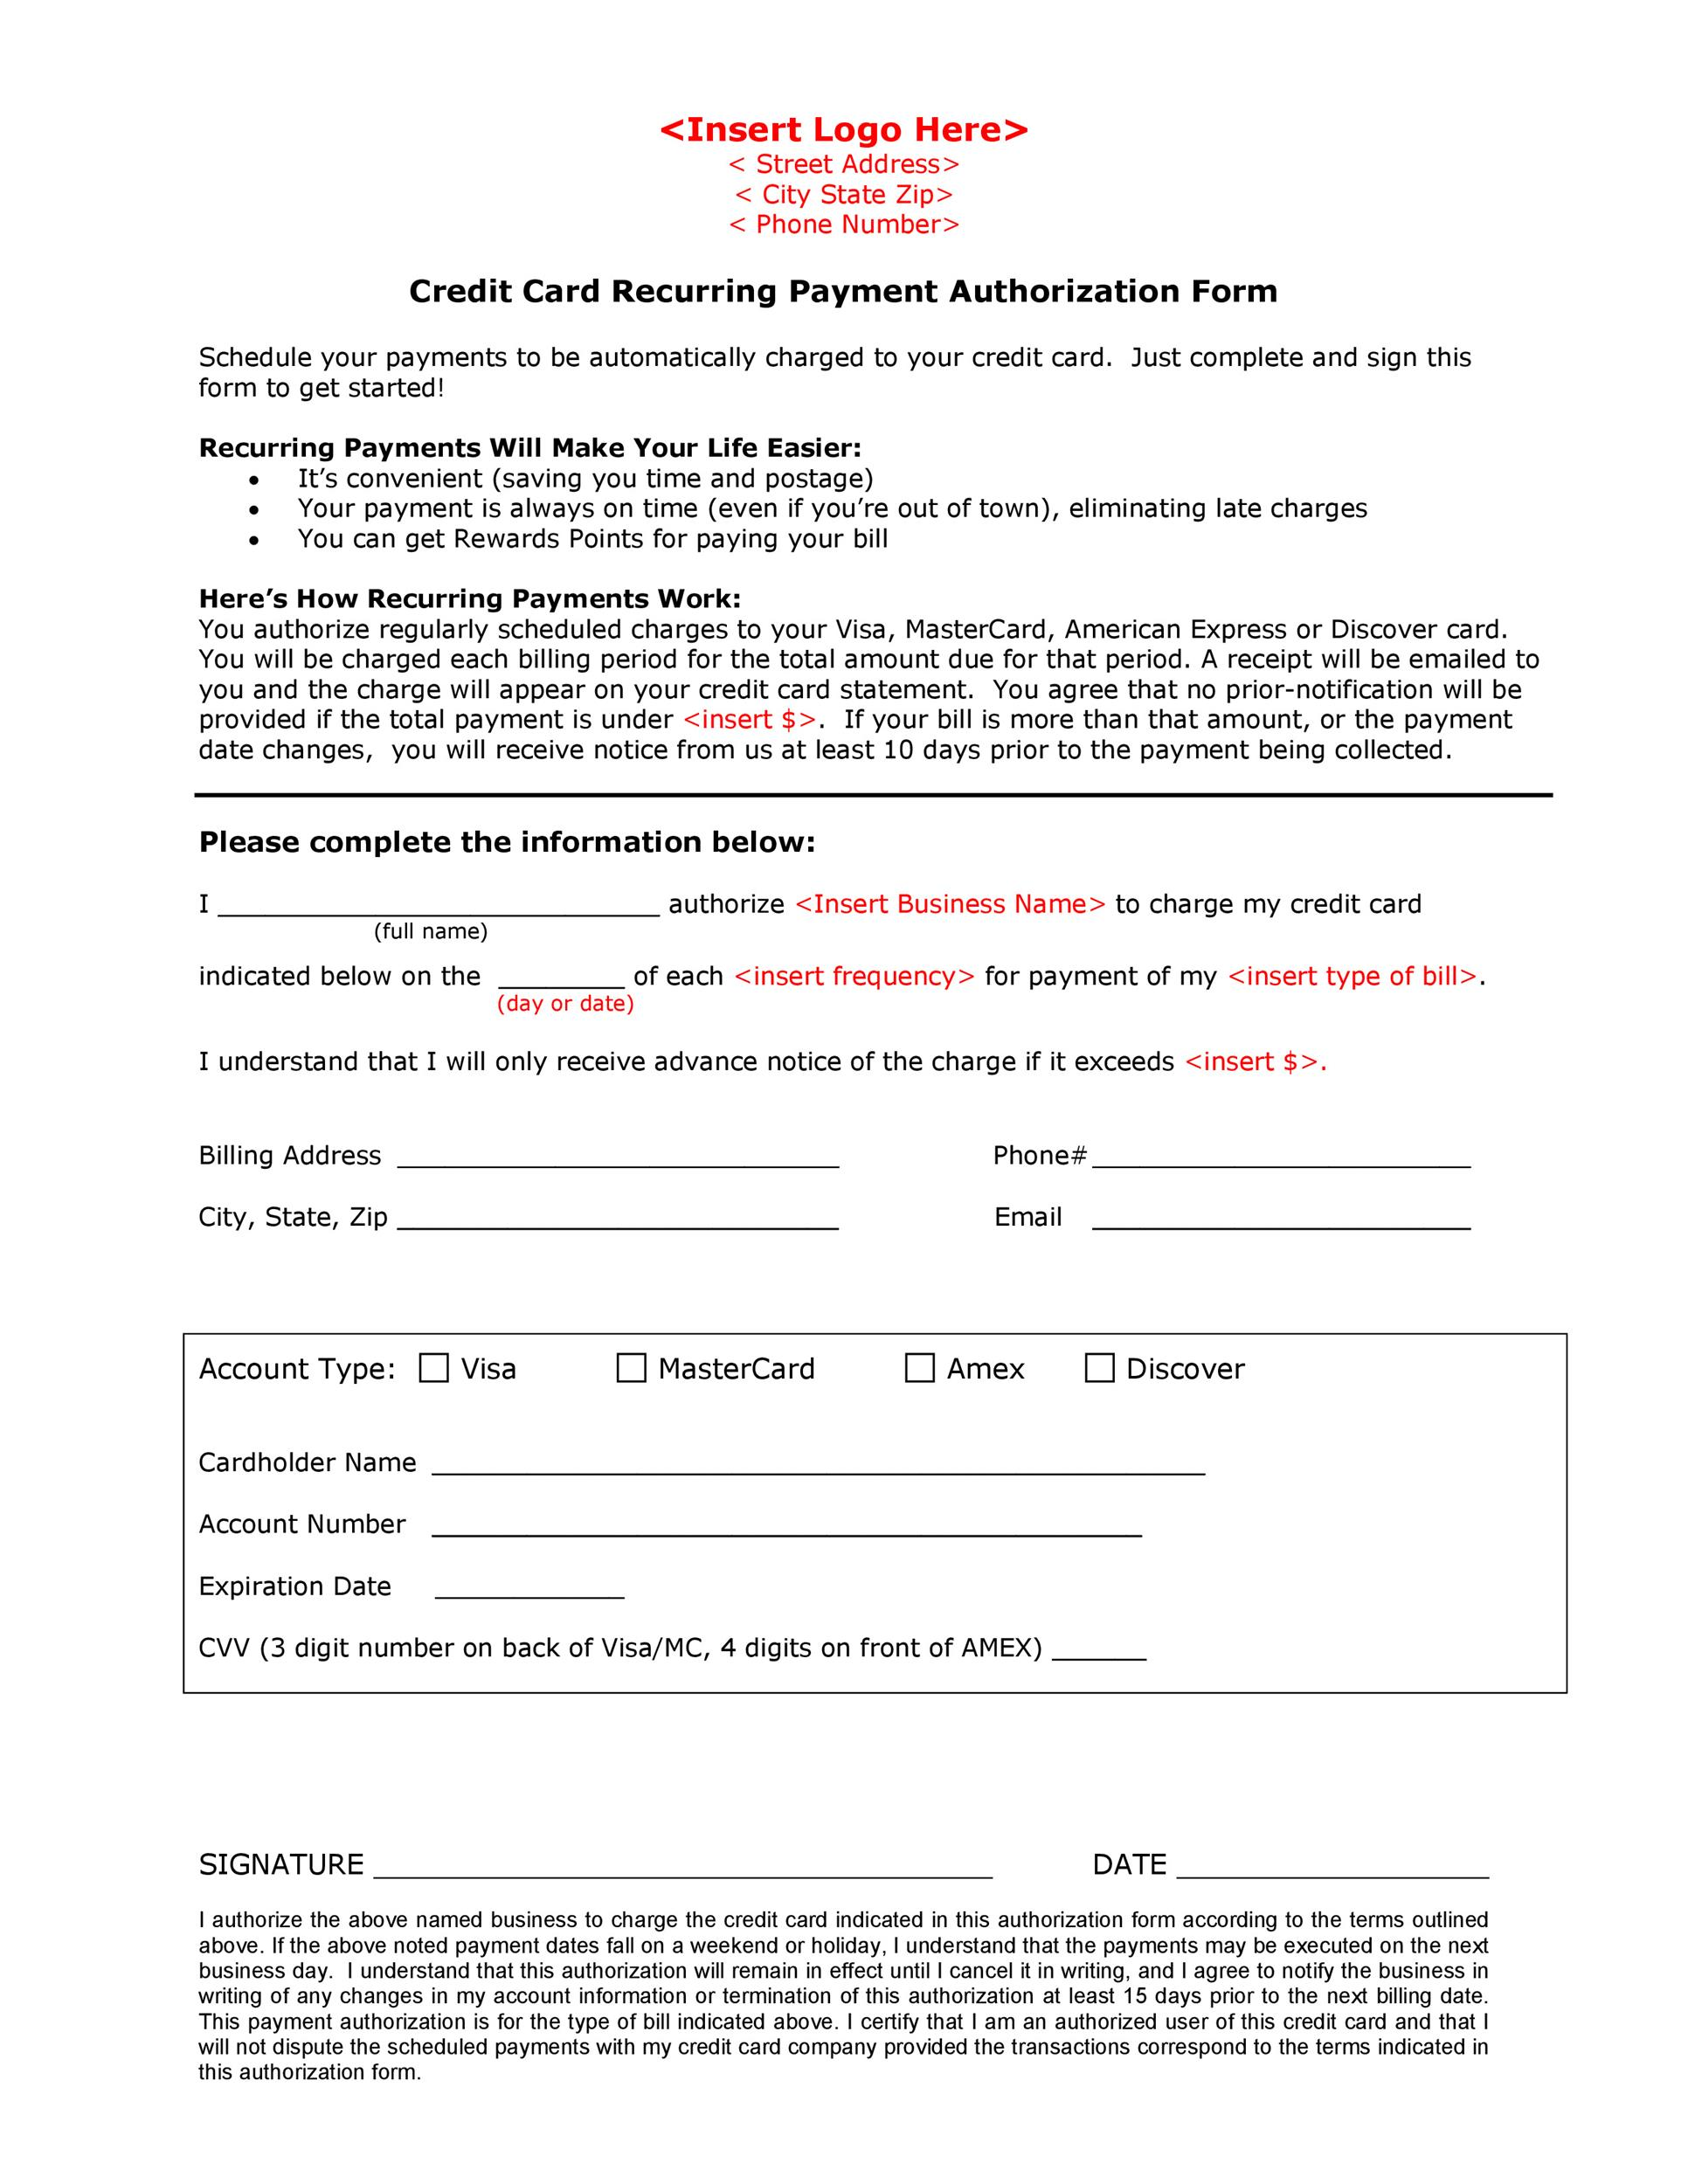 41 Credit Card Authorization Forms Templates {Ready-to-Use} - credit card authorization forms